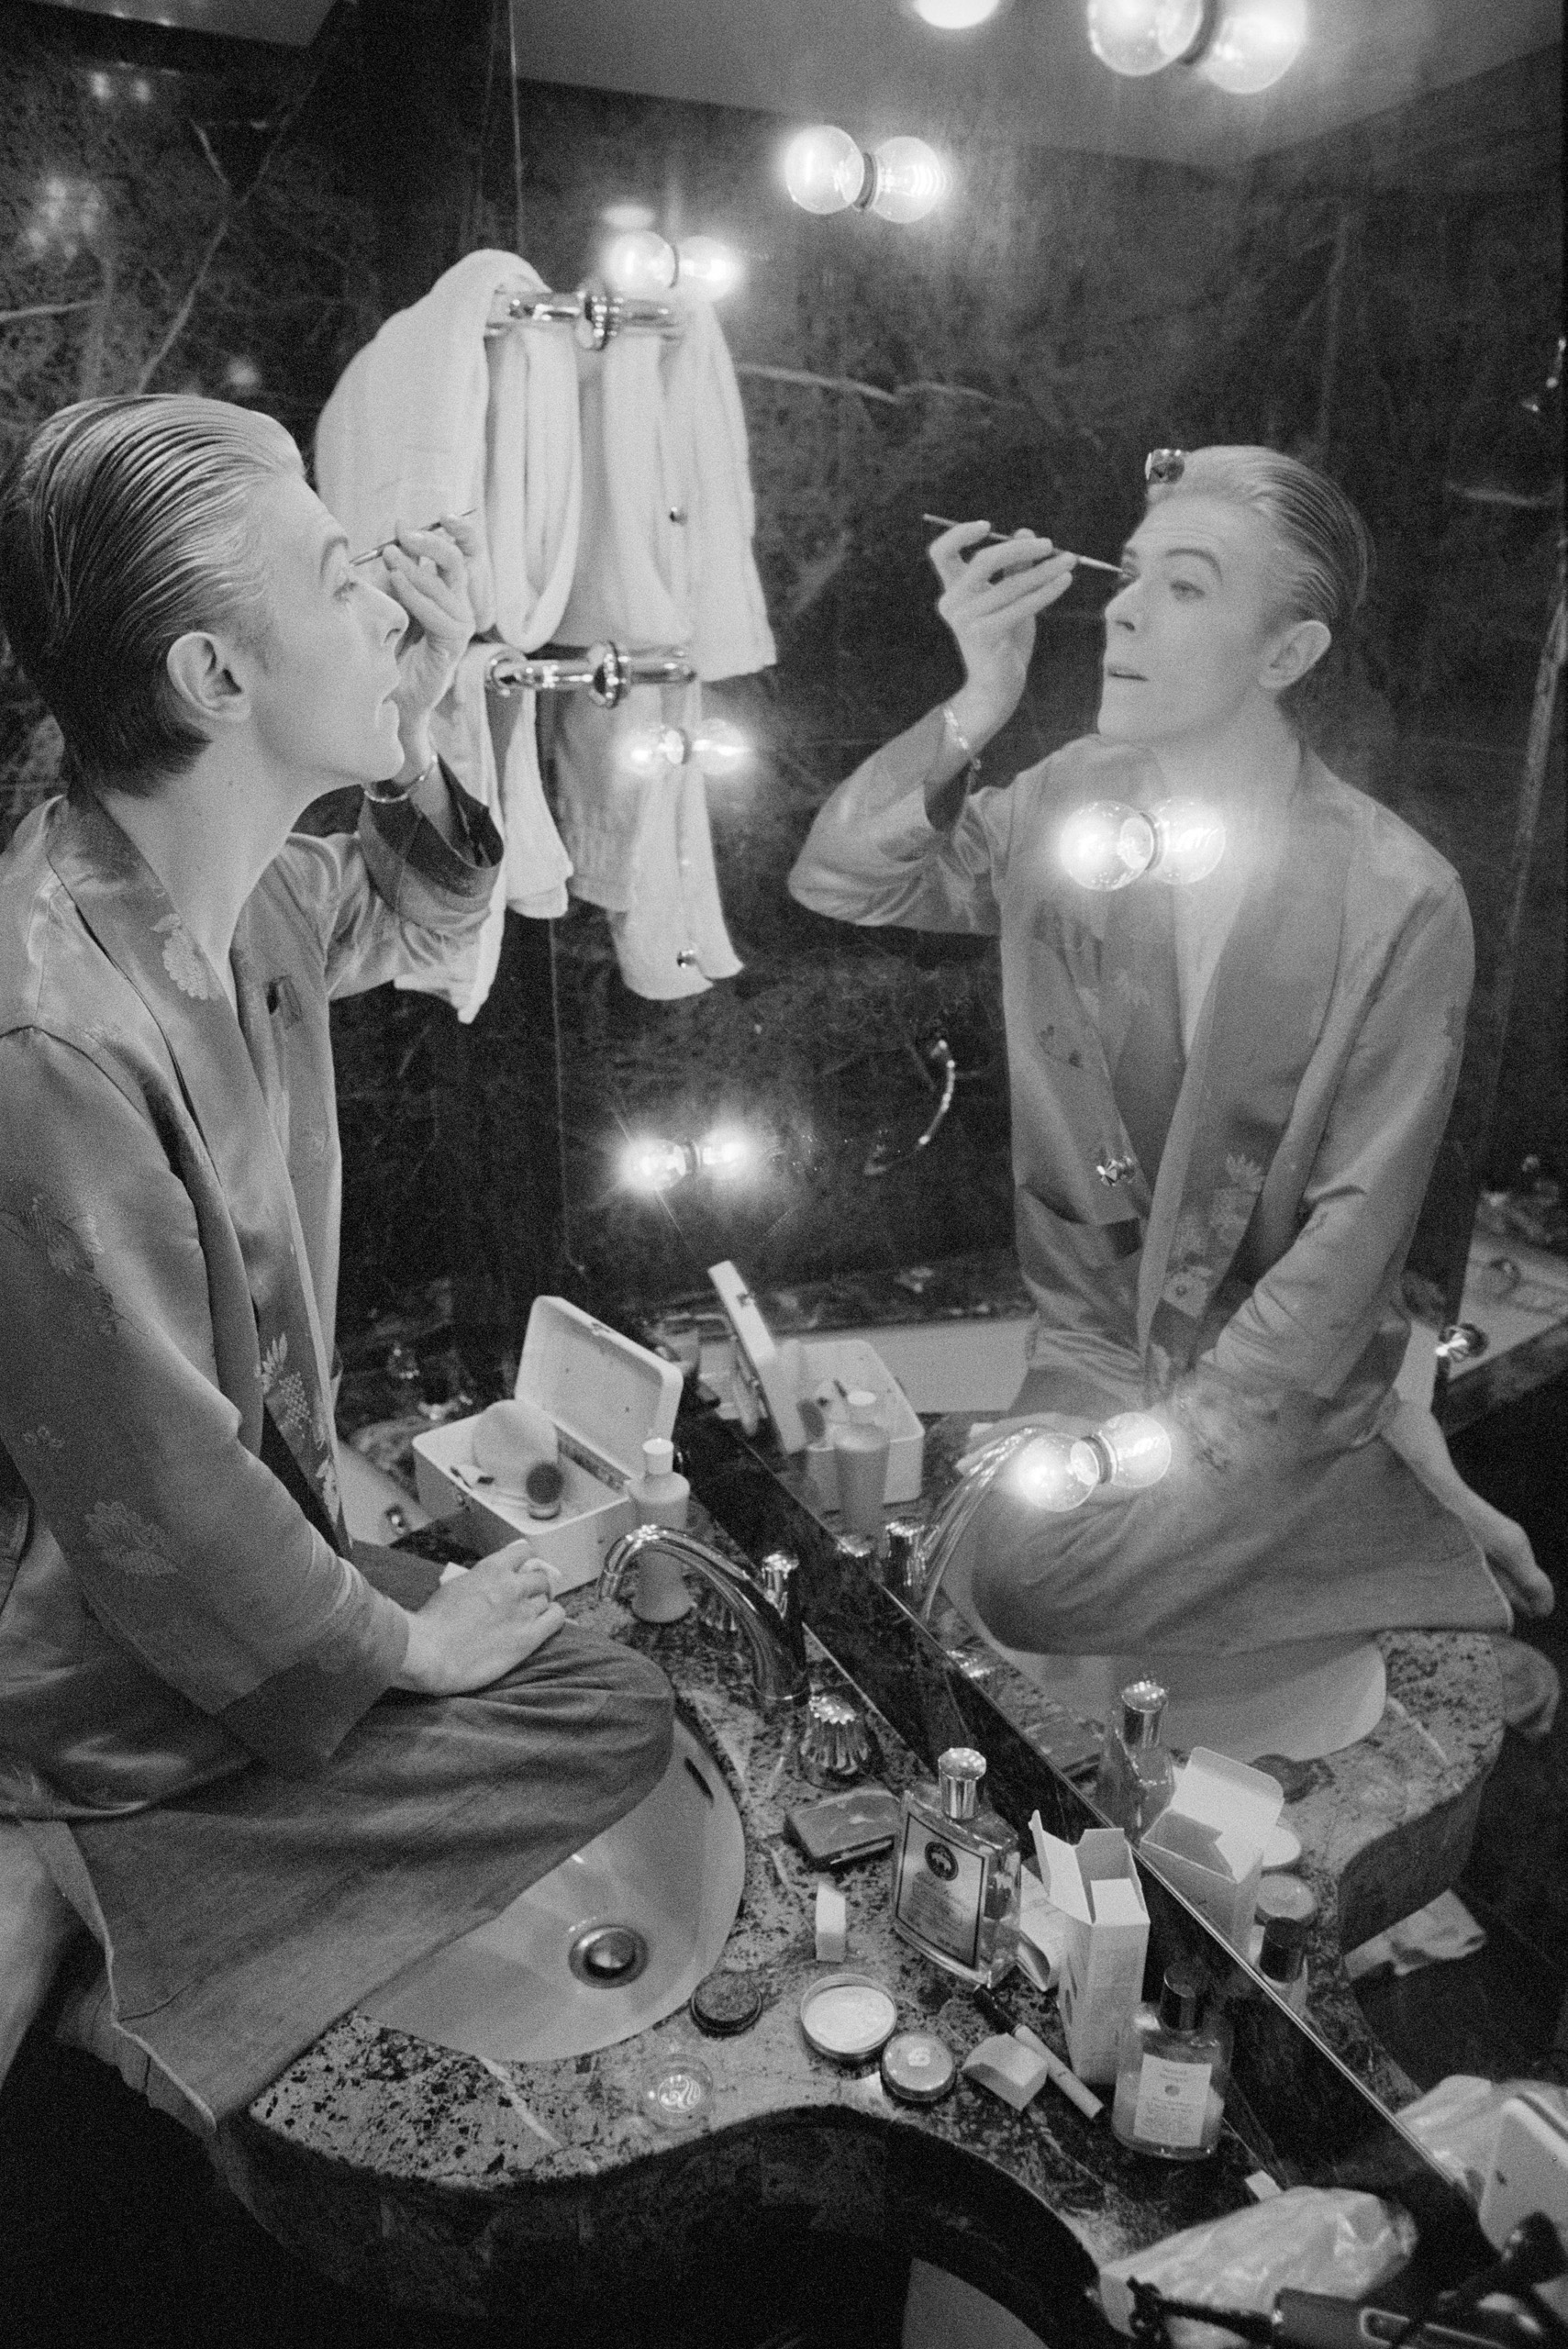 Bowie prepares his makeup in his Paris hotel suite prior to an impromptu photo. shoot.